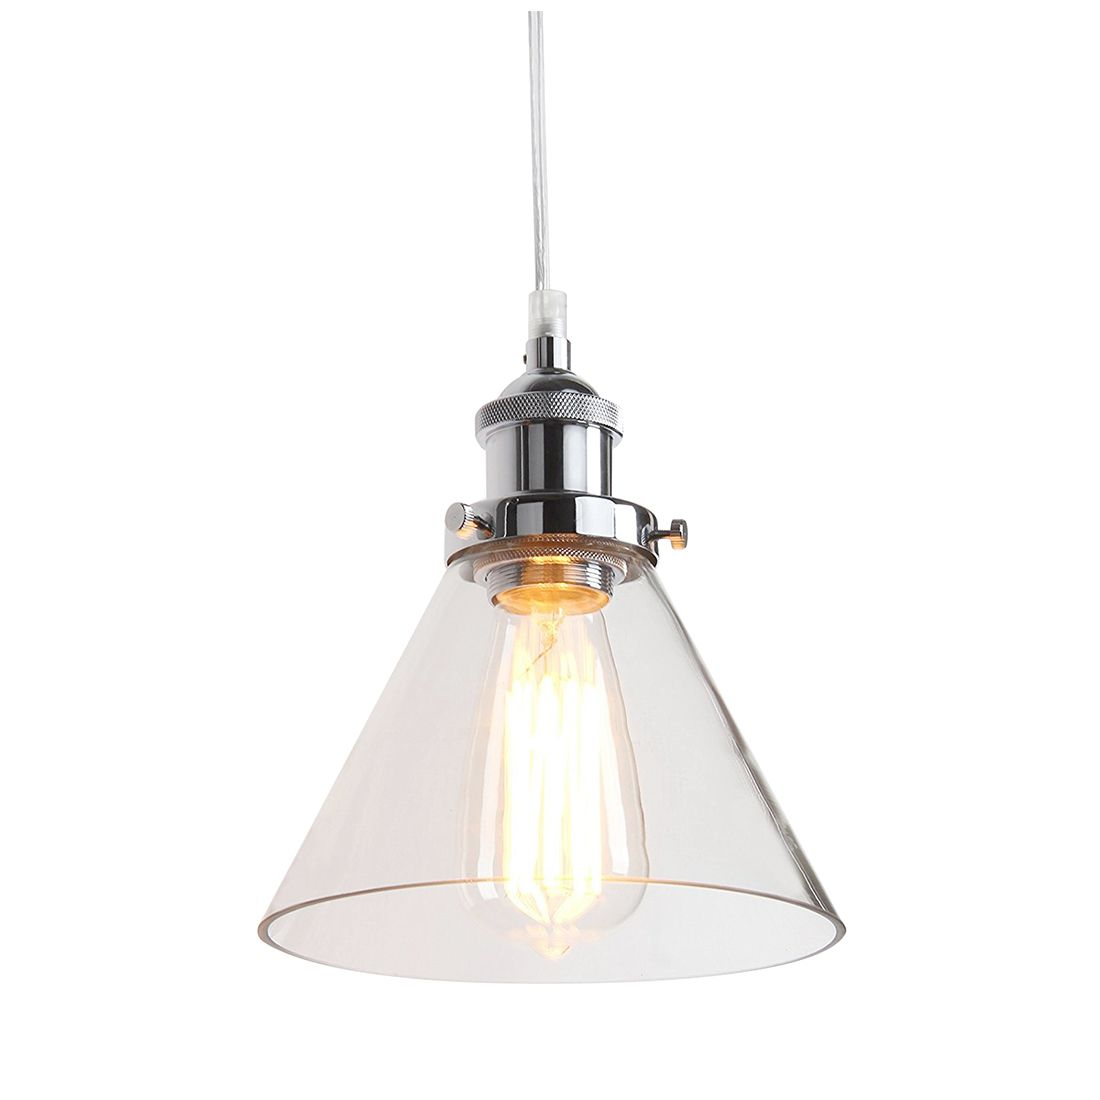 Industrial Vintage Stainless steel head Edison 1 Light Iron Body Glass Shade Loft Coffee Bar Kitchen Hanging Pendant LampIndustrial Vintage Stainless steel head Edison 1 Light Iron Body Glass Shade Loft Coffee Bar Kitchen Hanging Pendant Lamp